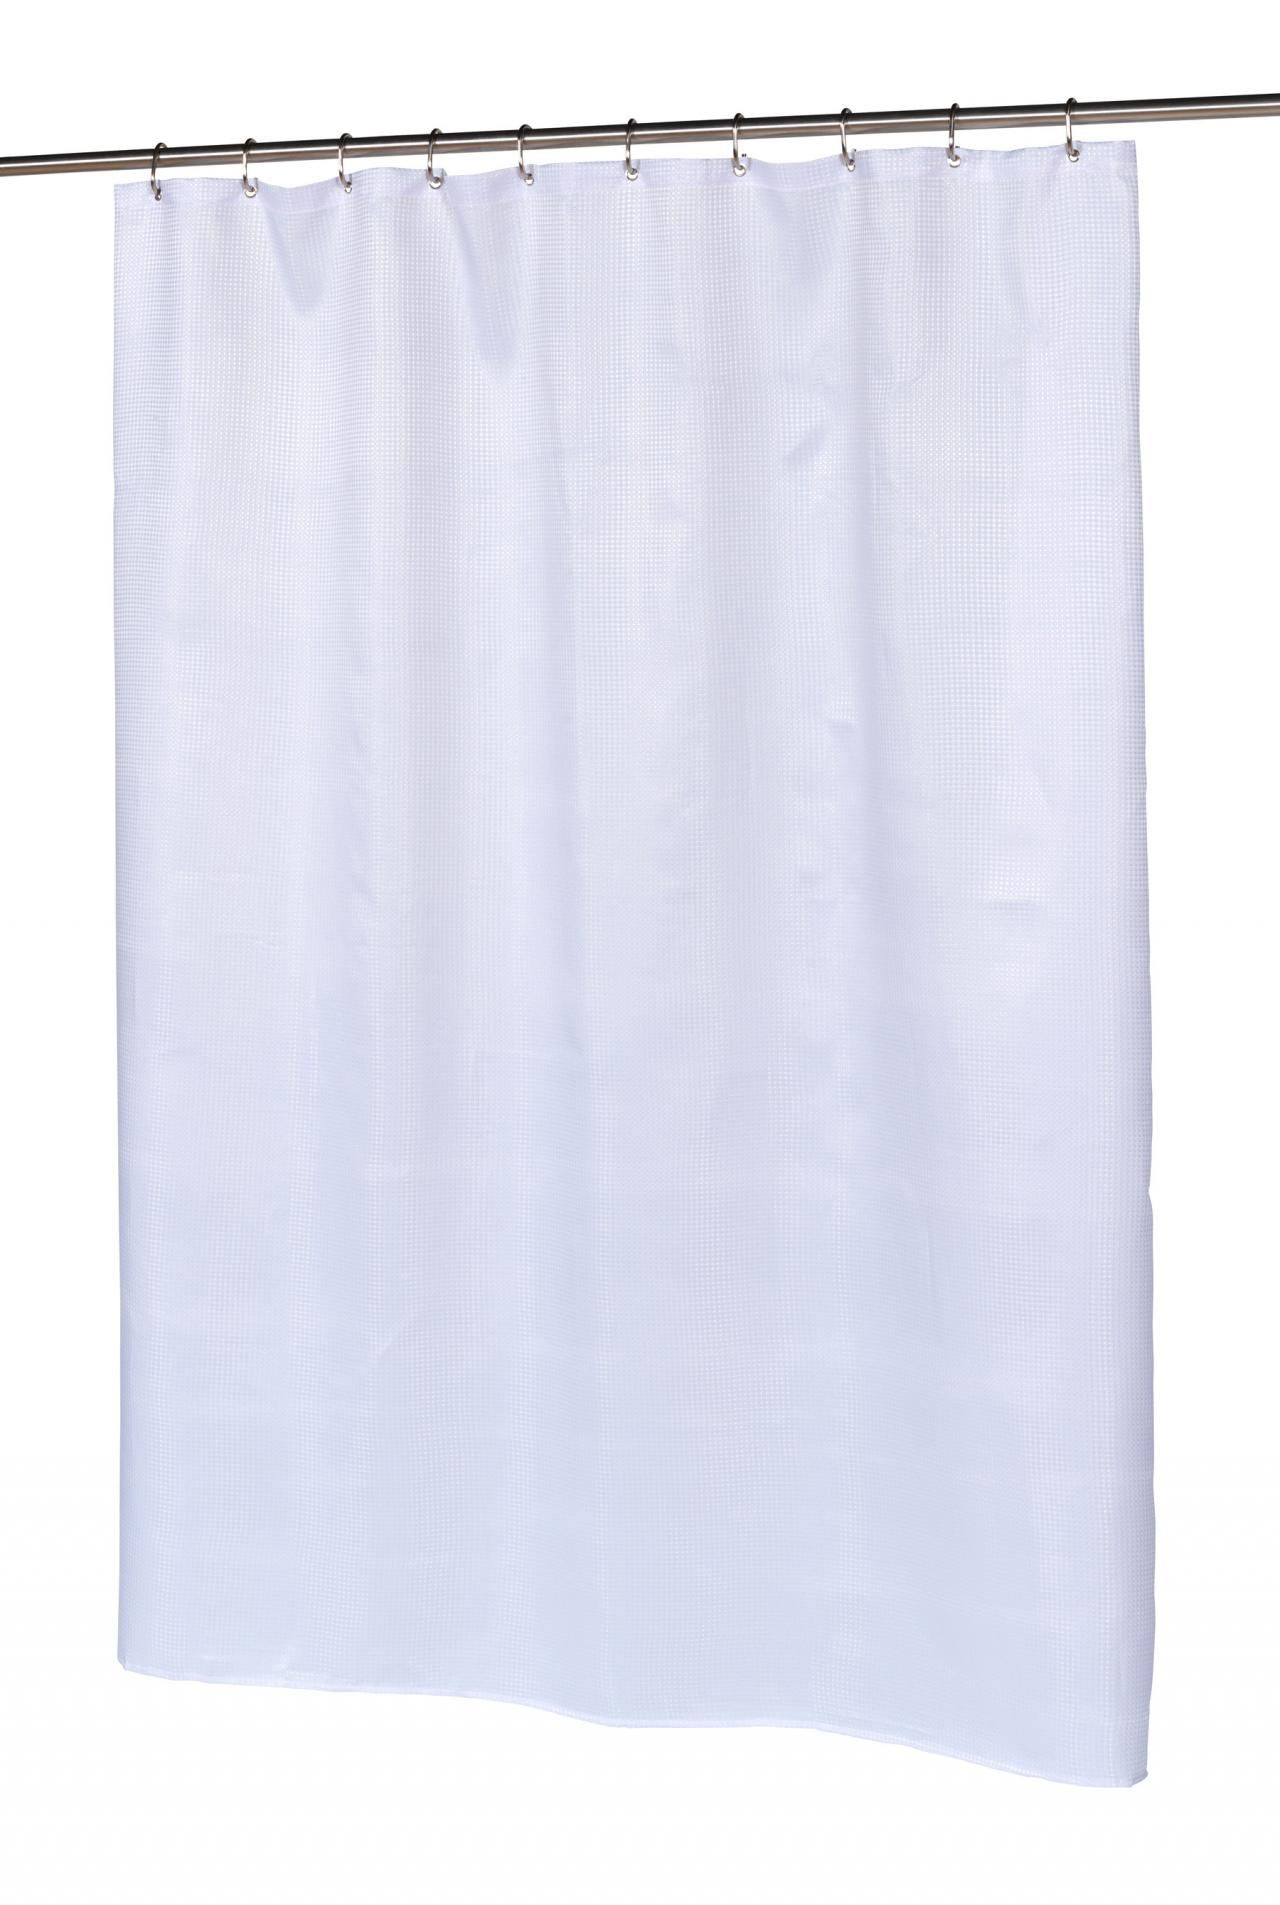 by belgian birdseye curtains p pique white curtain waffle matouk htm shower